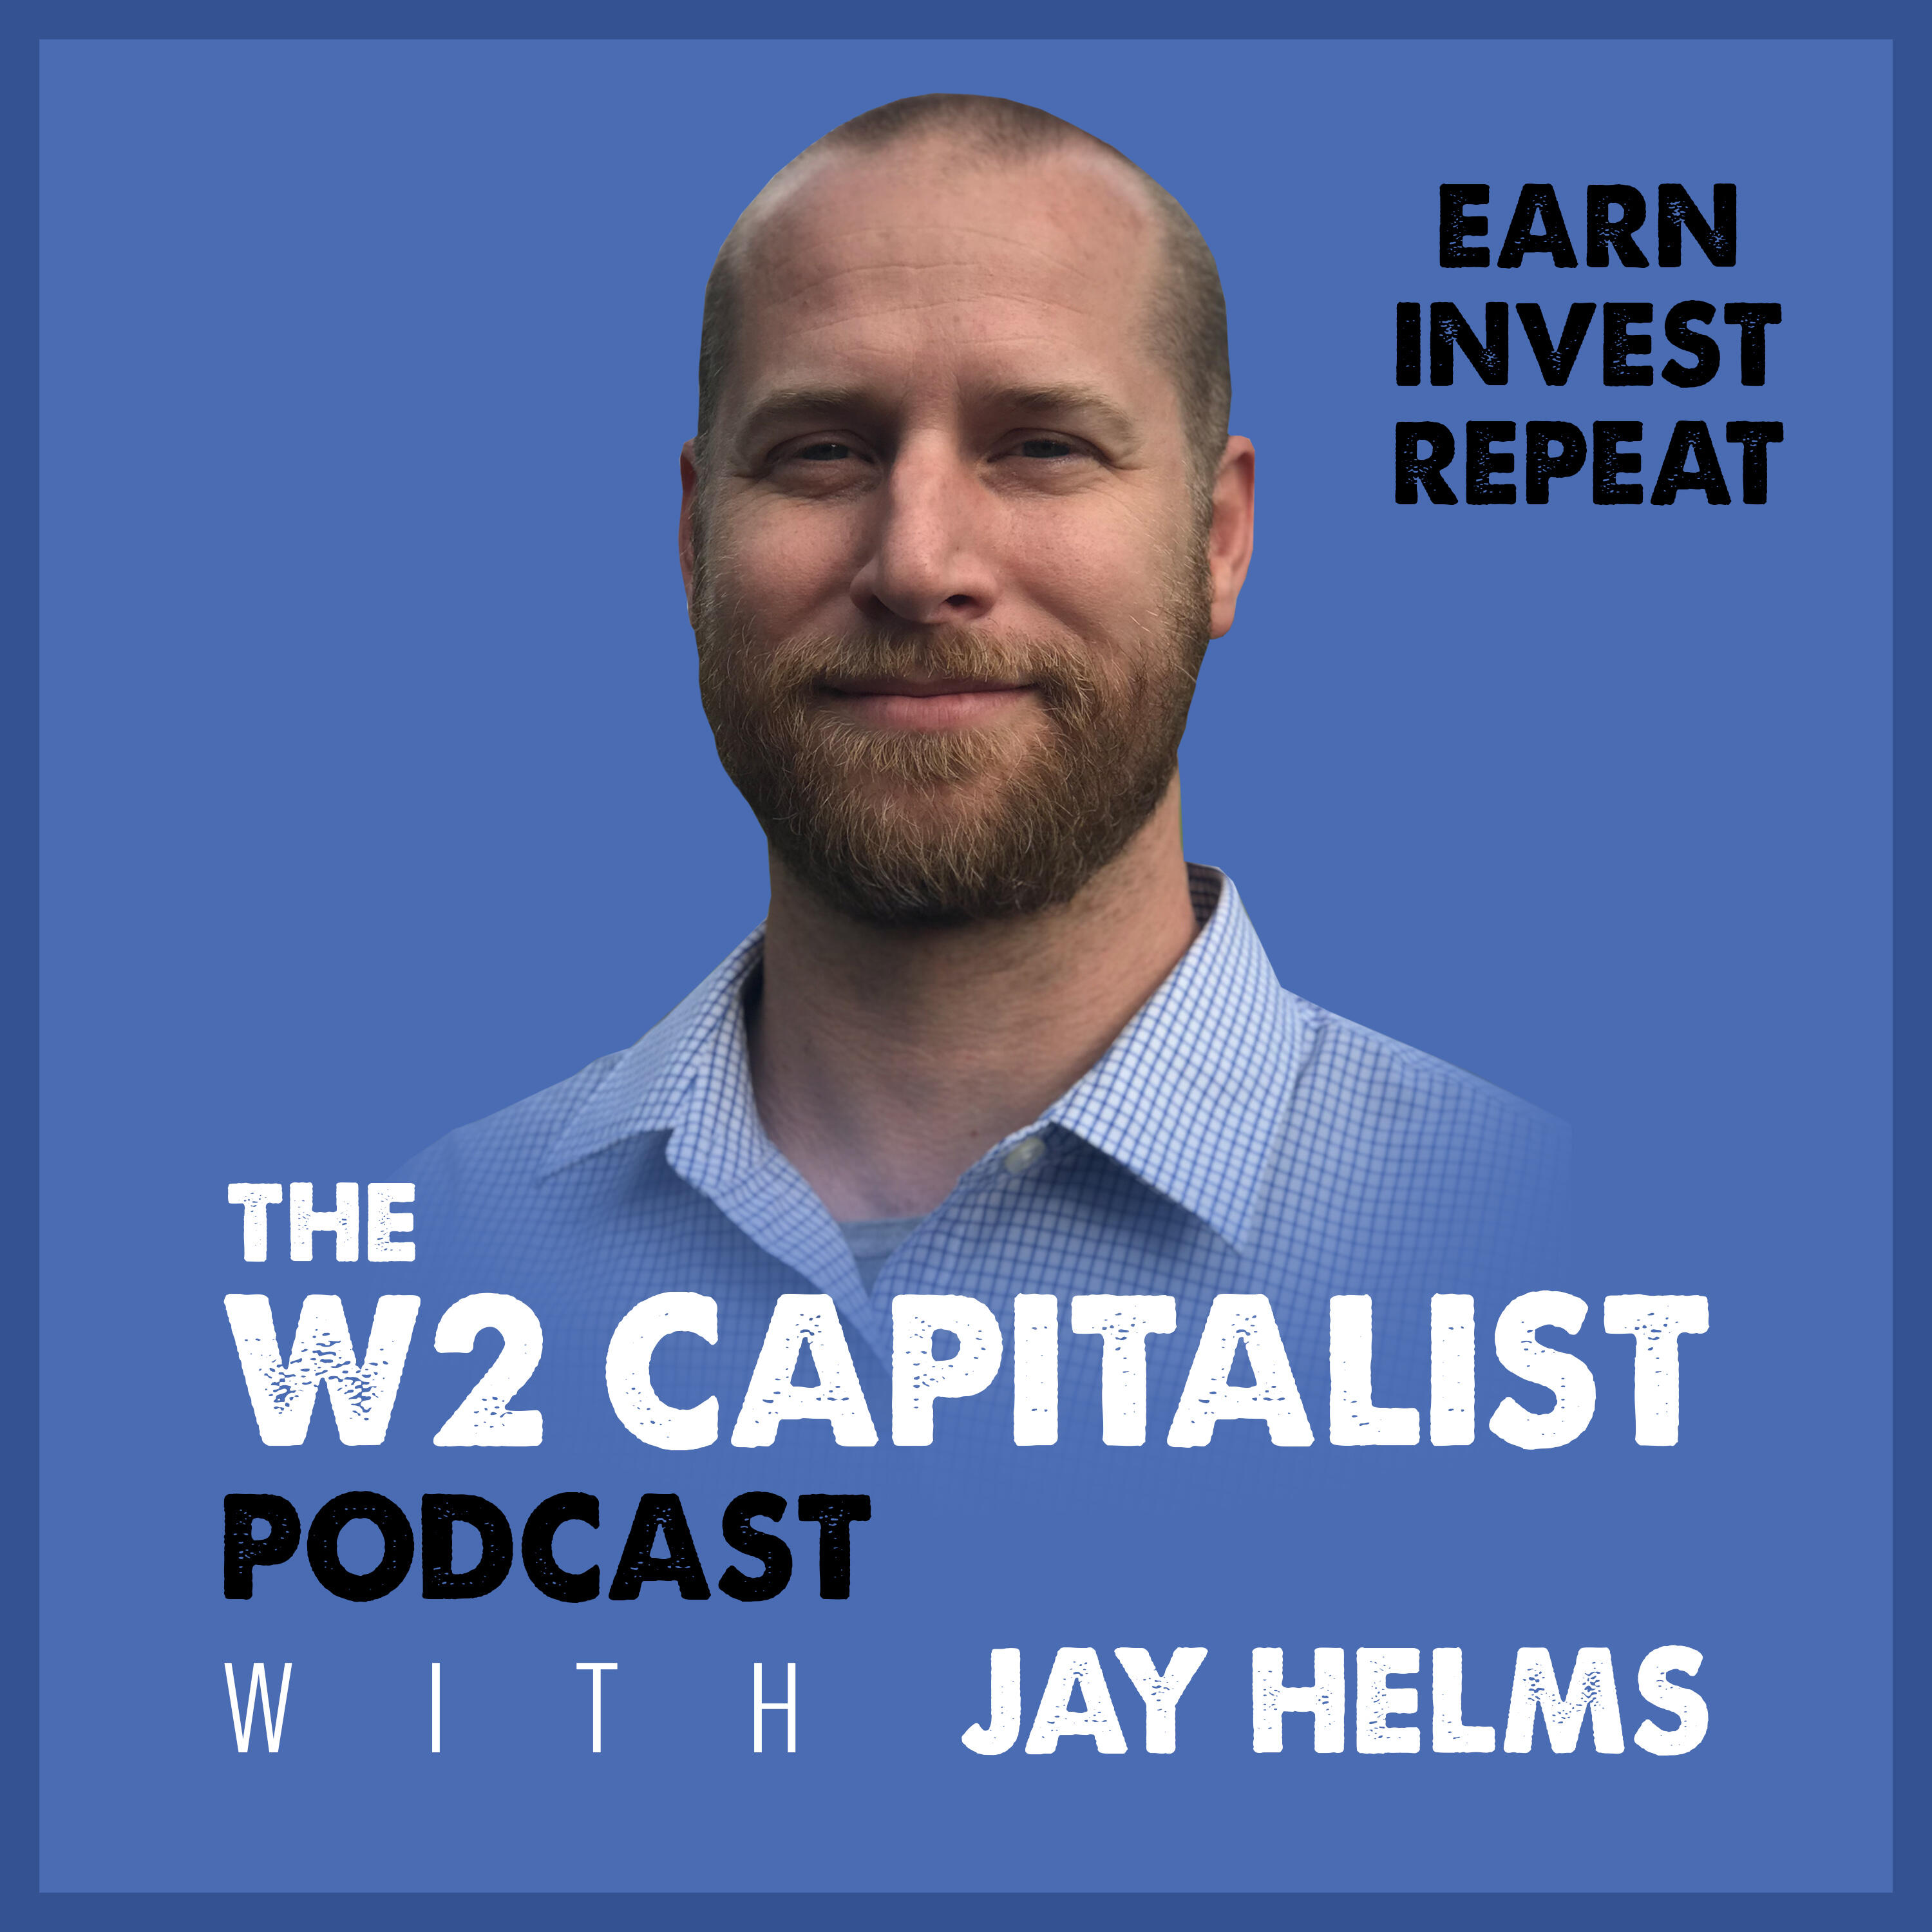 W2 Capitalist | EARN. INVEST. REPEAT.